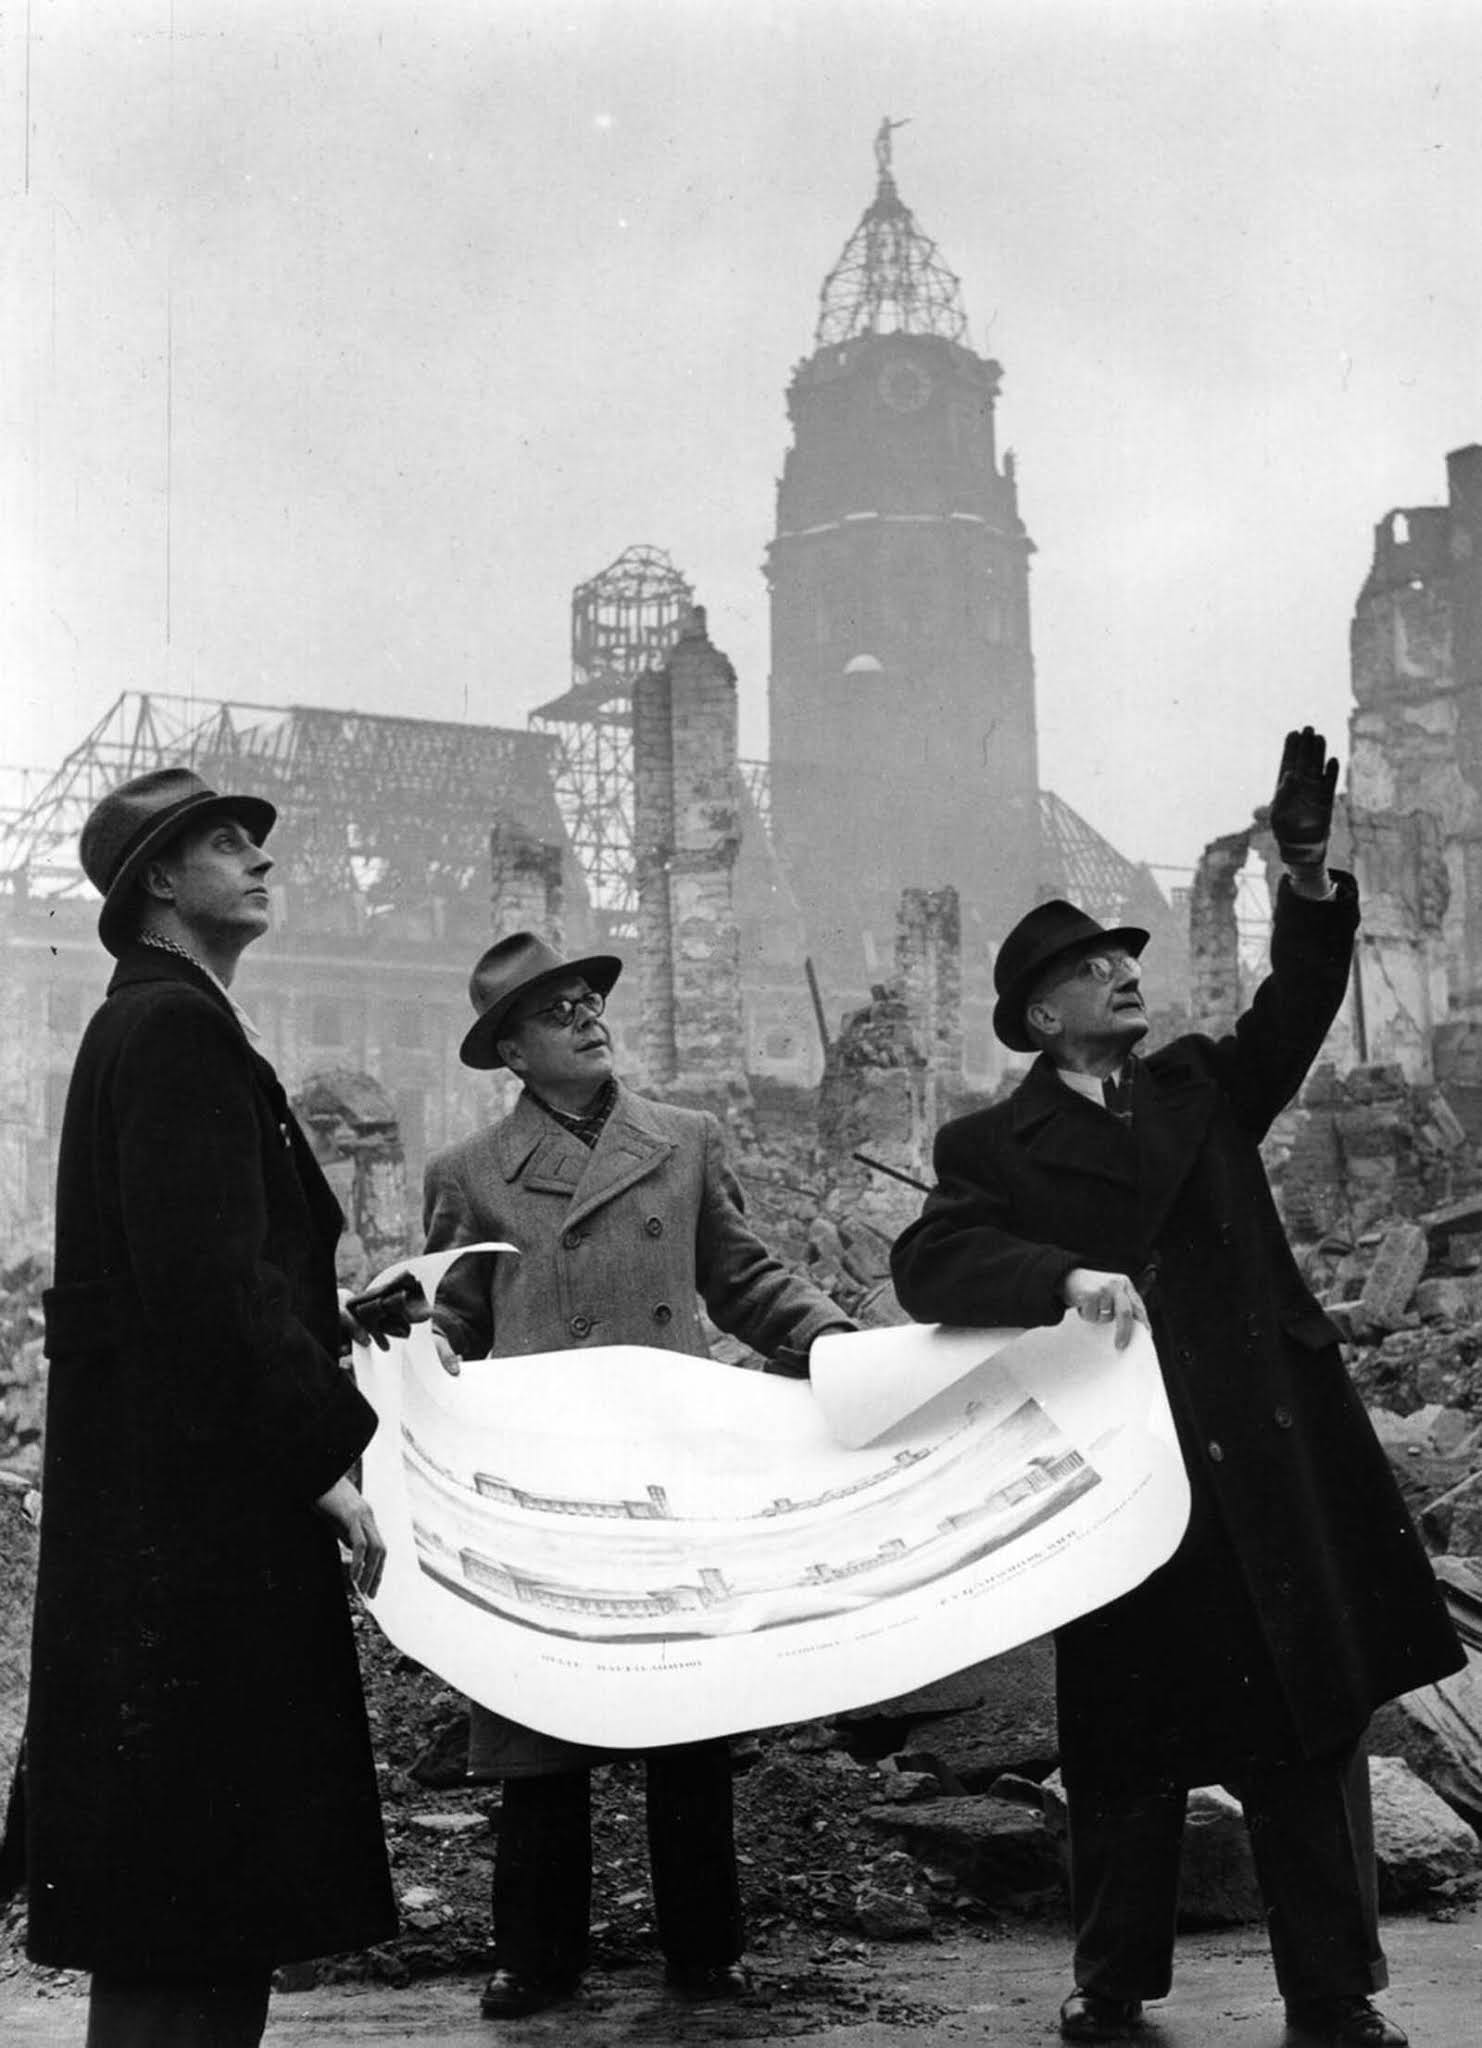 Propaganda director Heinz Grunewald, Mayor Walter Weidauer and architect Dr. C. Herbert discuss plans for rebuilding the city. 1946.